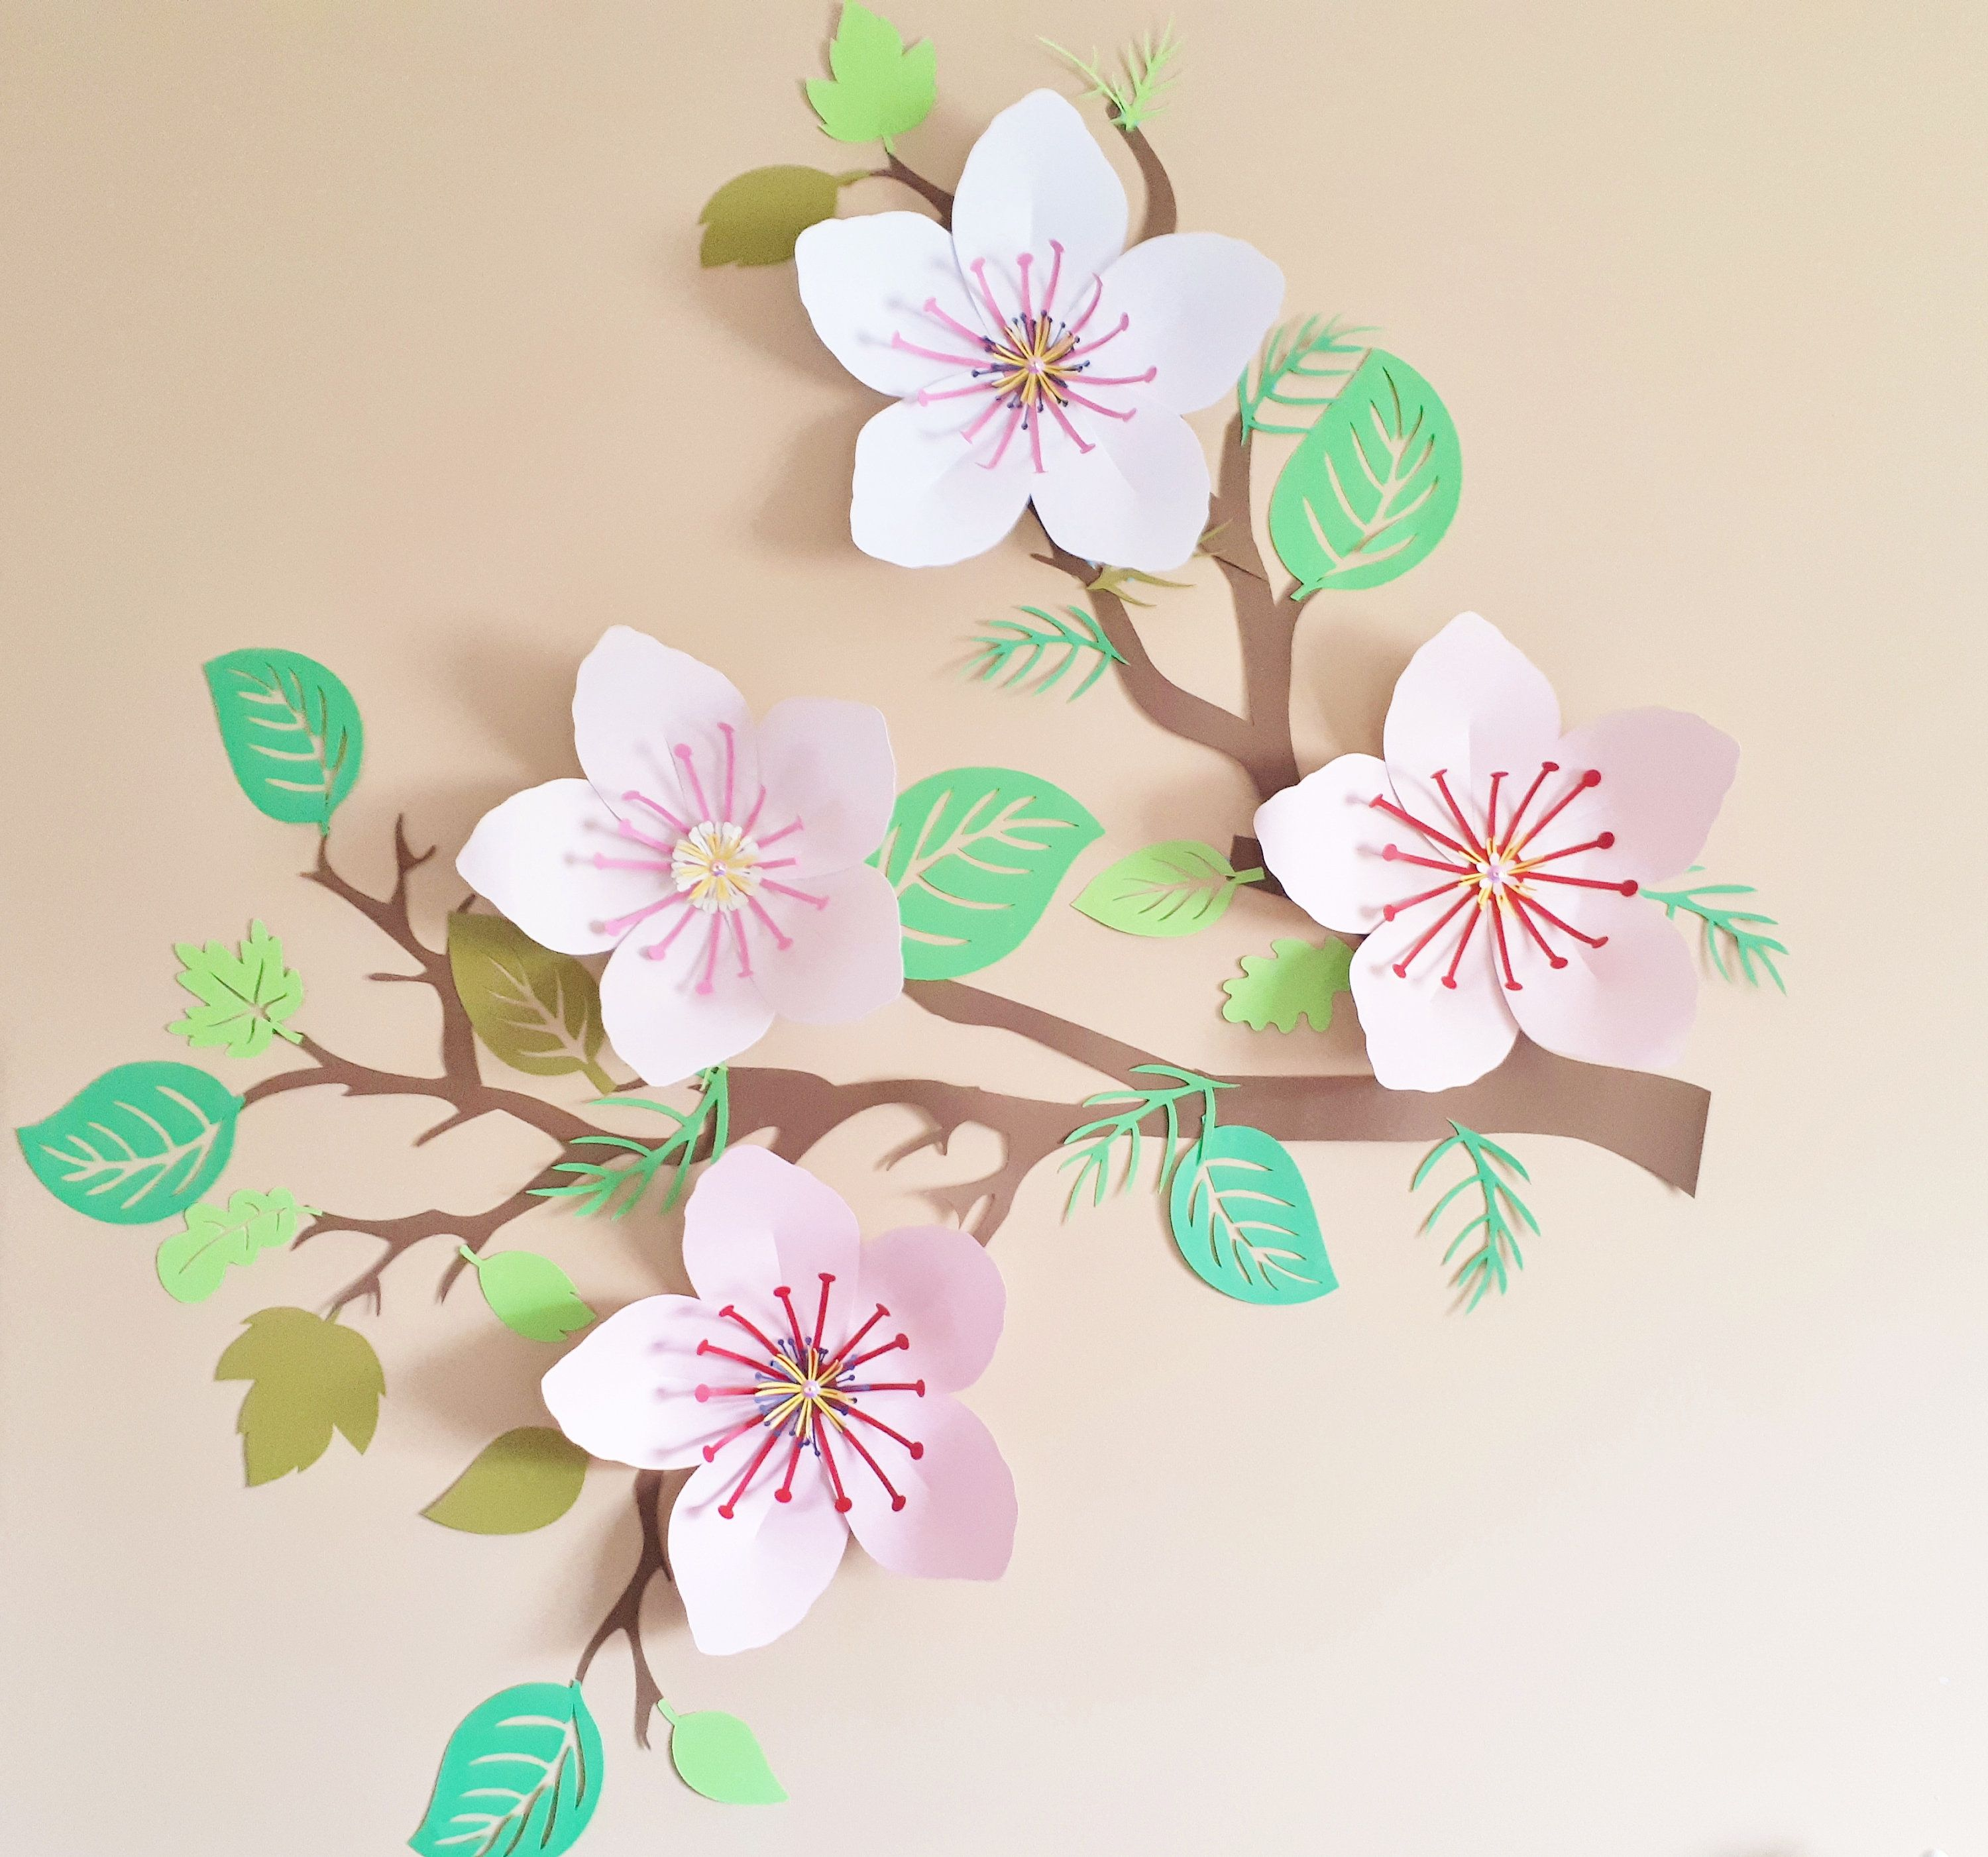 Cherry Blossom Tree Wall Art Decor For Bedrooms And Baby Nursery Customize In Your Choice Of Colours Flower Nursery Decor Tree Wall Art Paper Wall Art